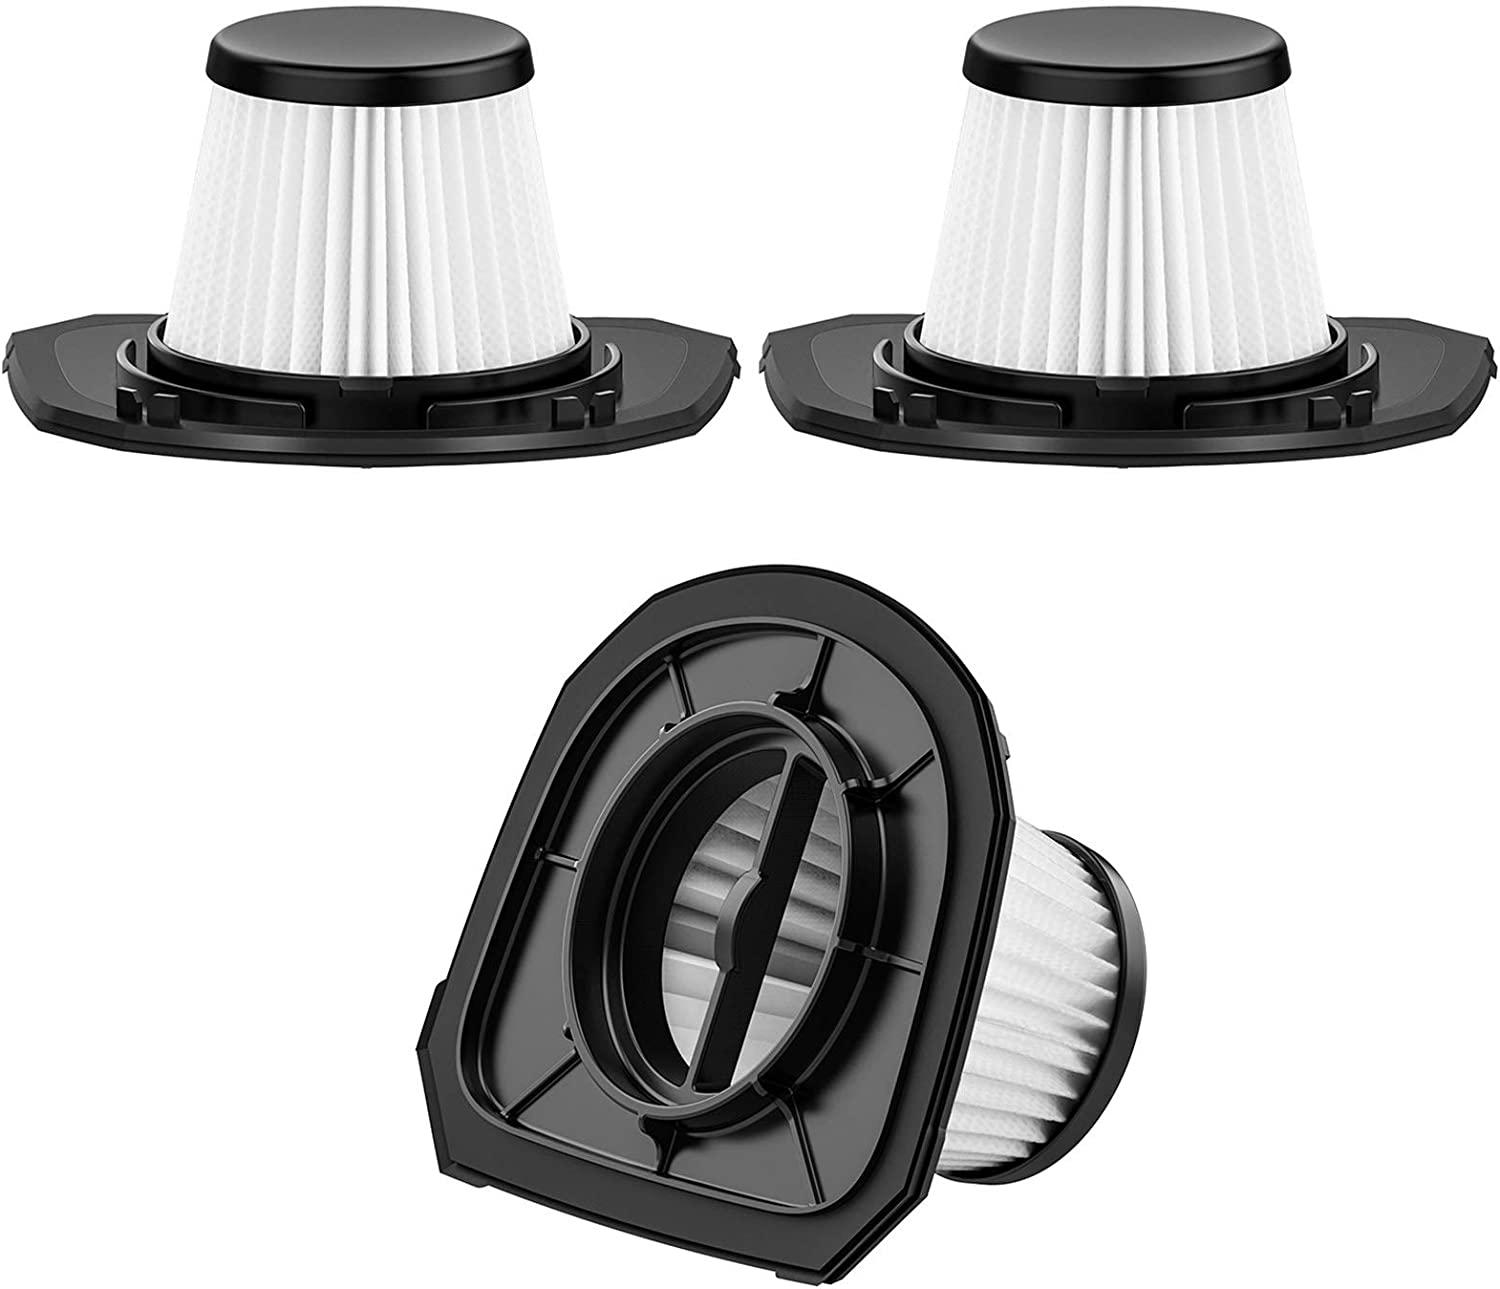 Holife Replaceable Filters for Cordless Handheld Vacuum Cleaner, Washable and Reusable, 3 Pack Vacuum Filters (Model: HM218B)